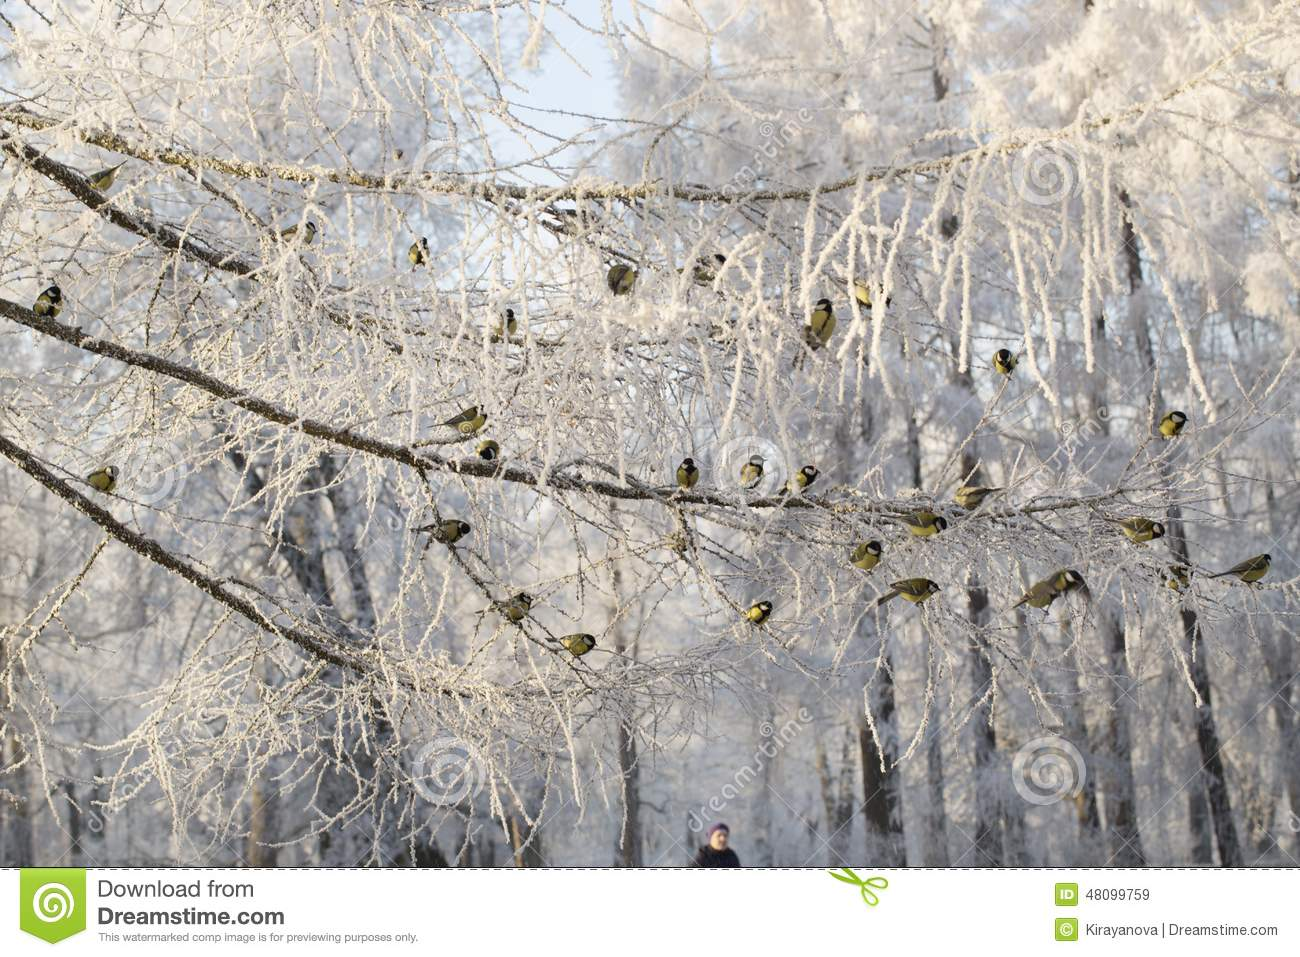 Group of titmouses among snow-covered branches